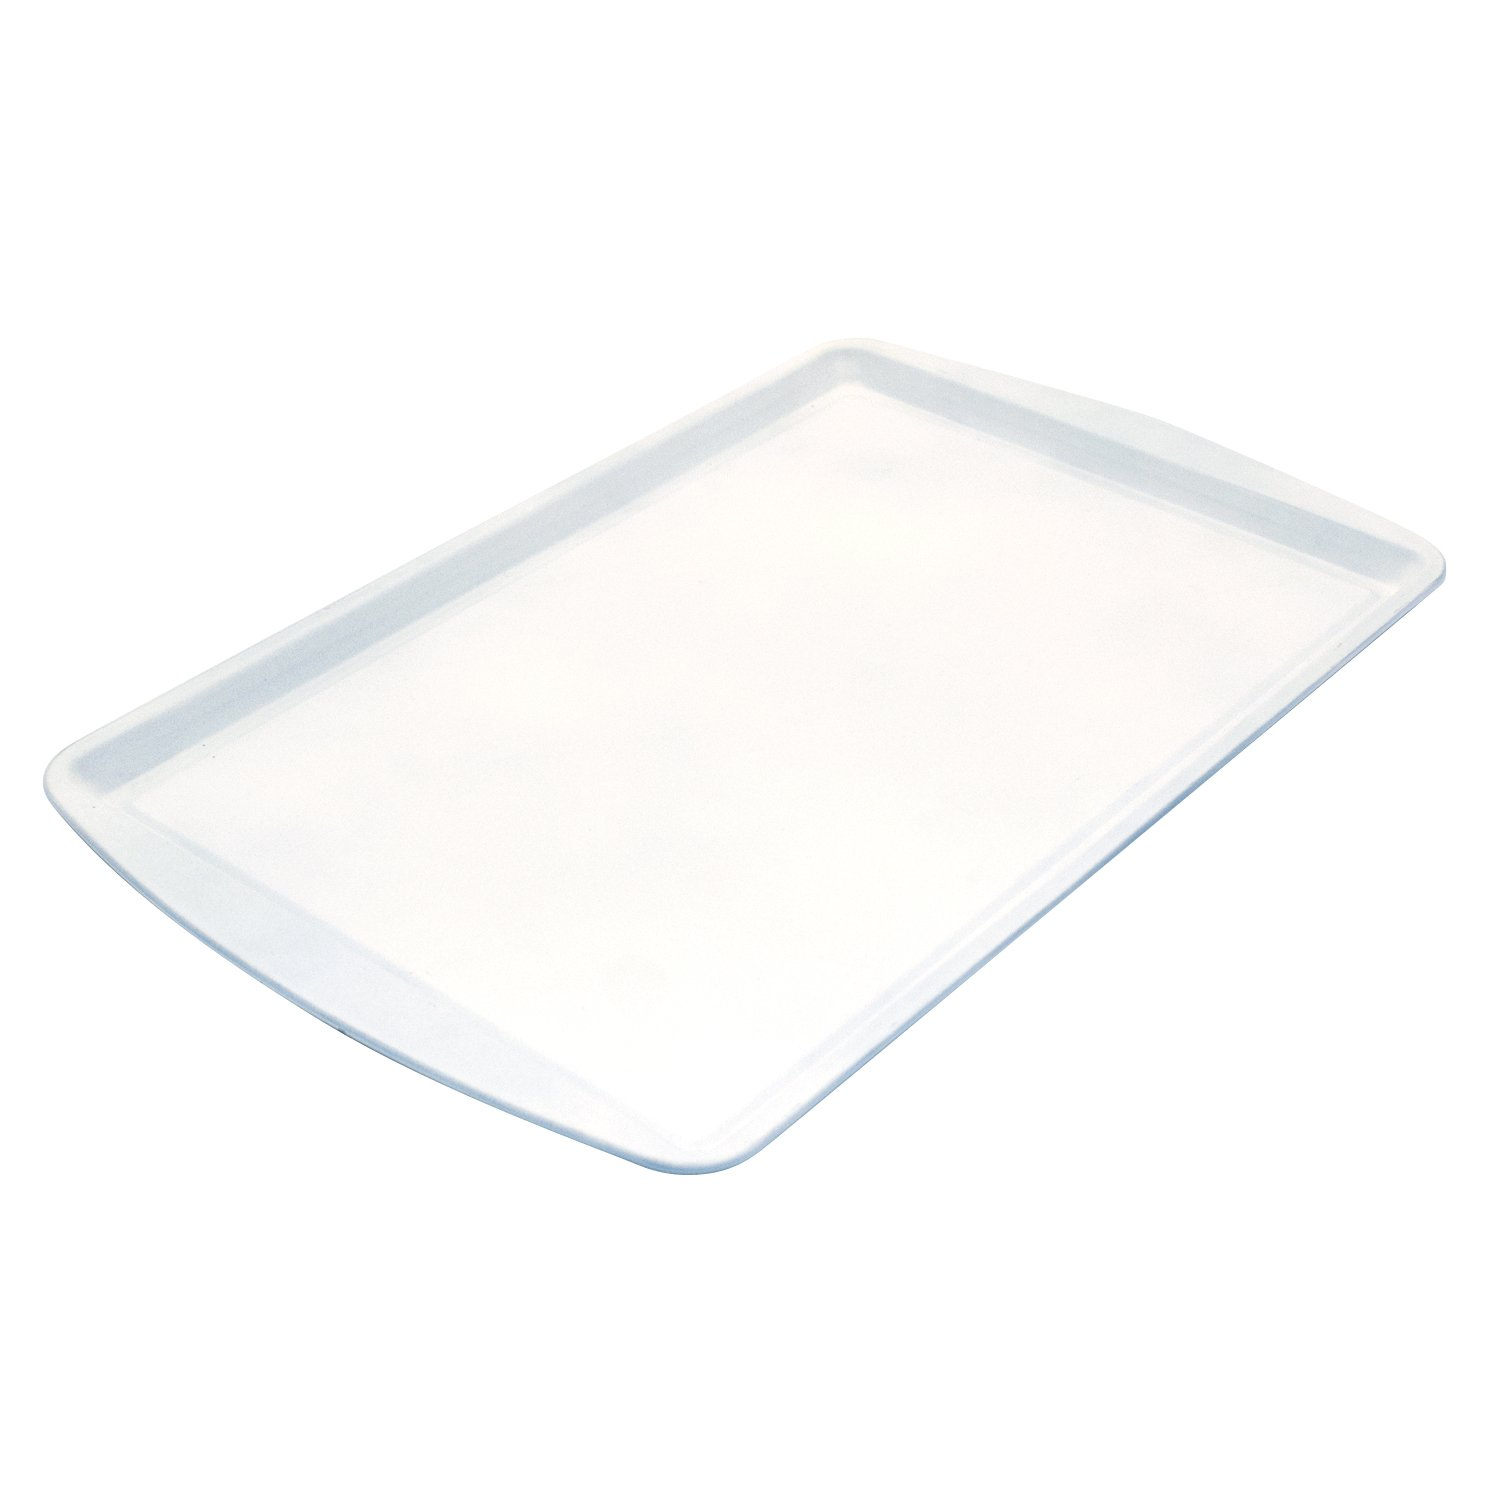 Range Kleen BC4010 CeramaBake 10 x 15 Cookie Sheet White 10x15 RANGE KLEEN MFG. INC.